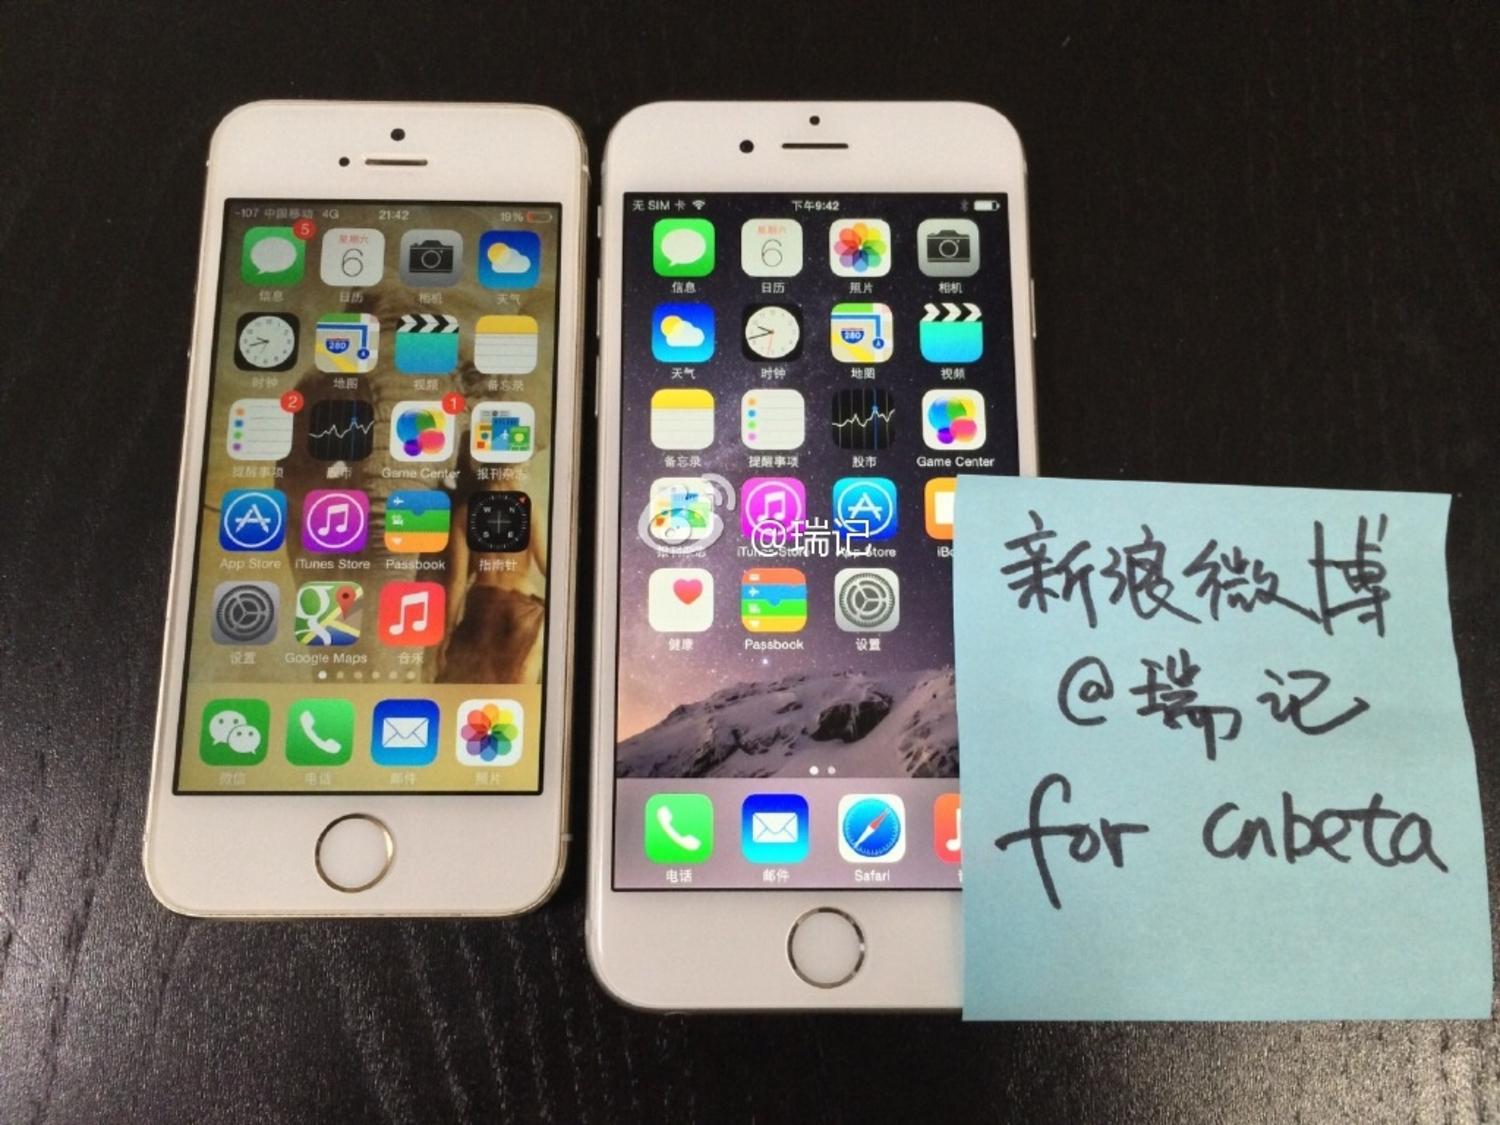 Leaked from China: The iPhone 6!